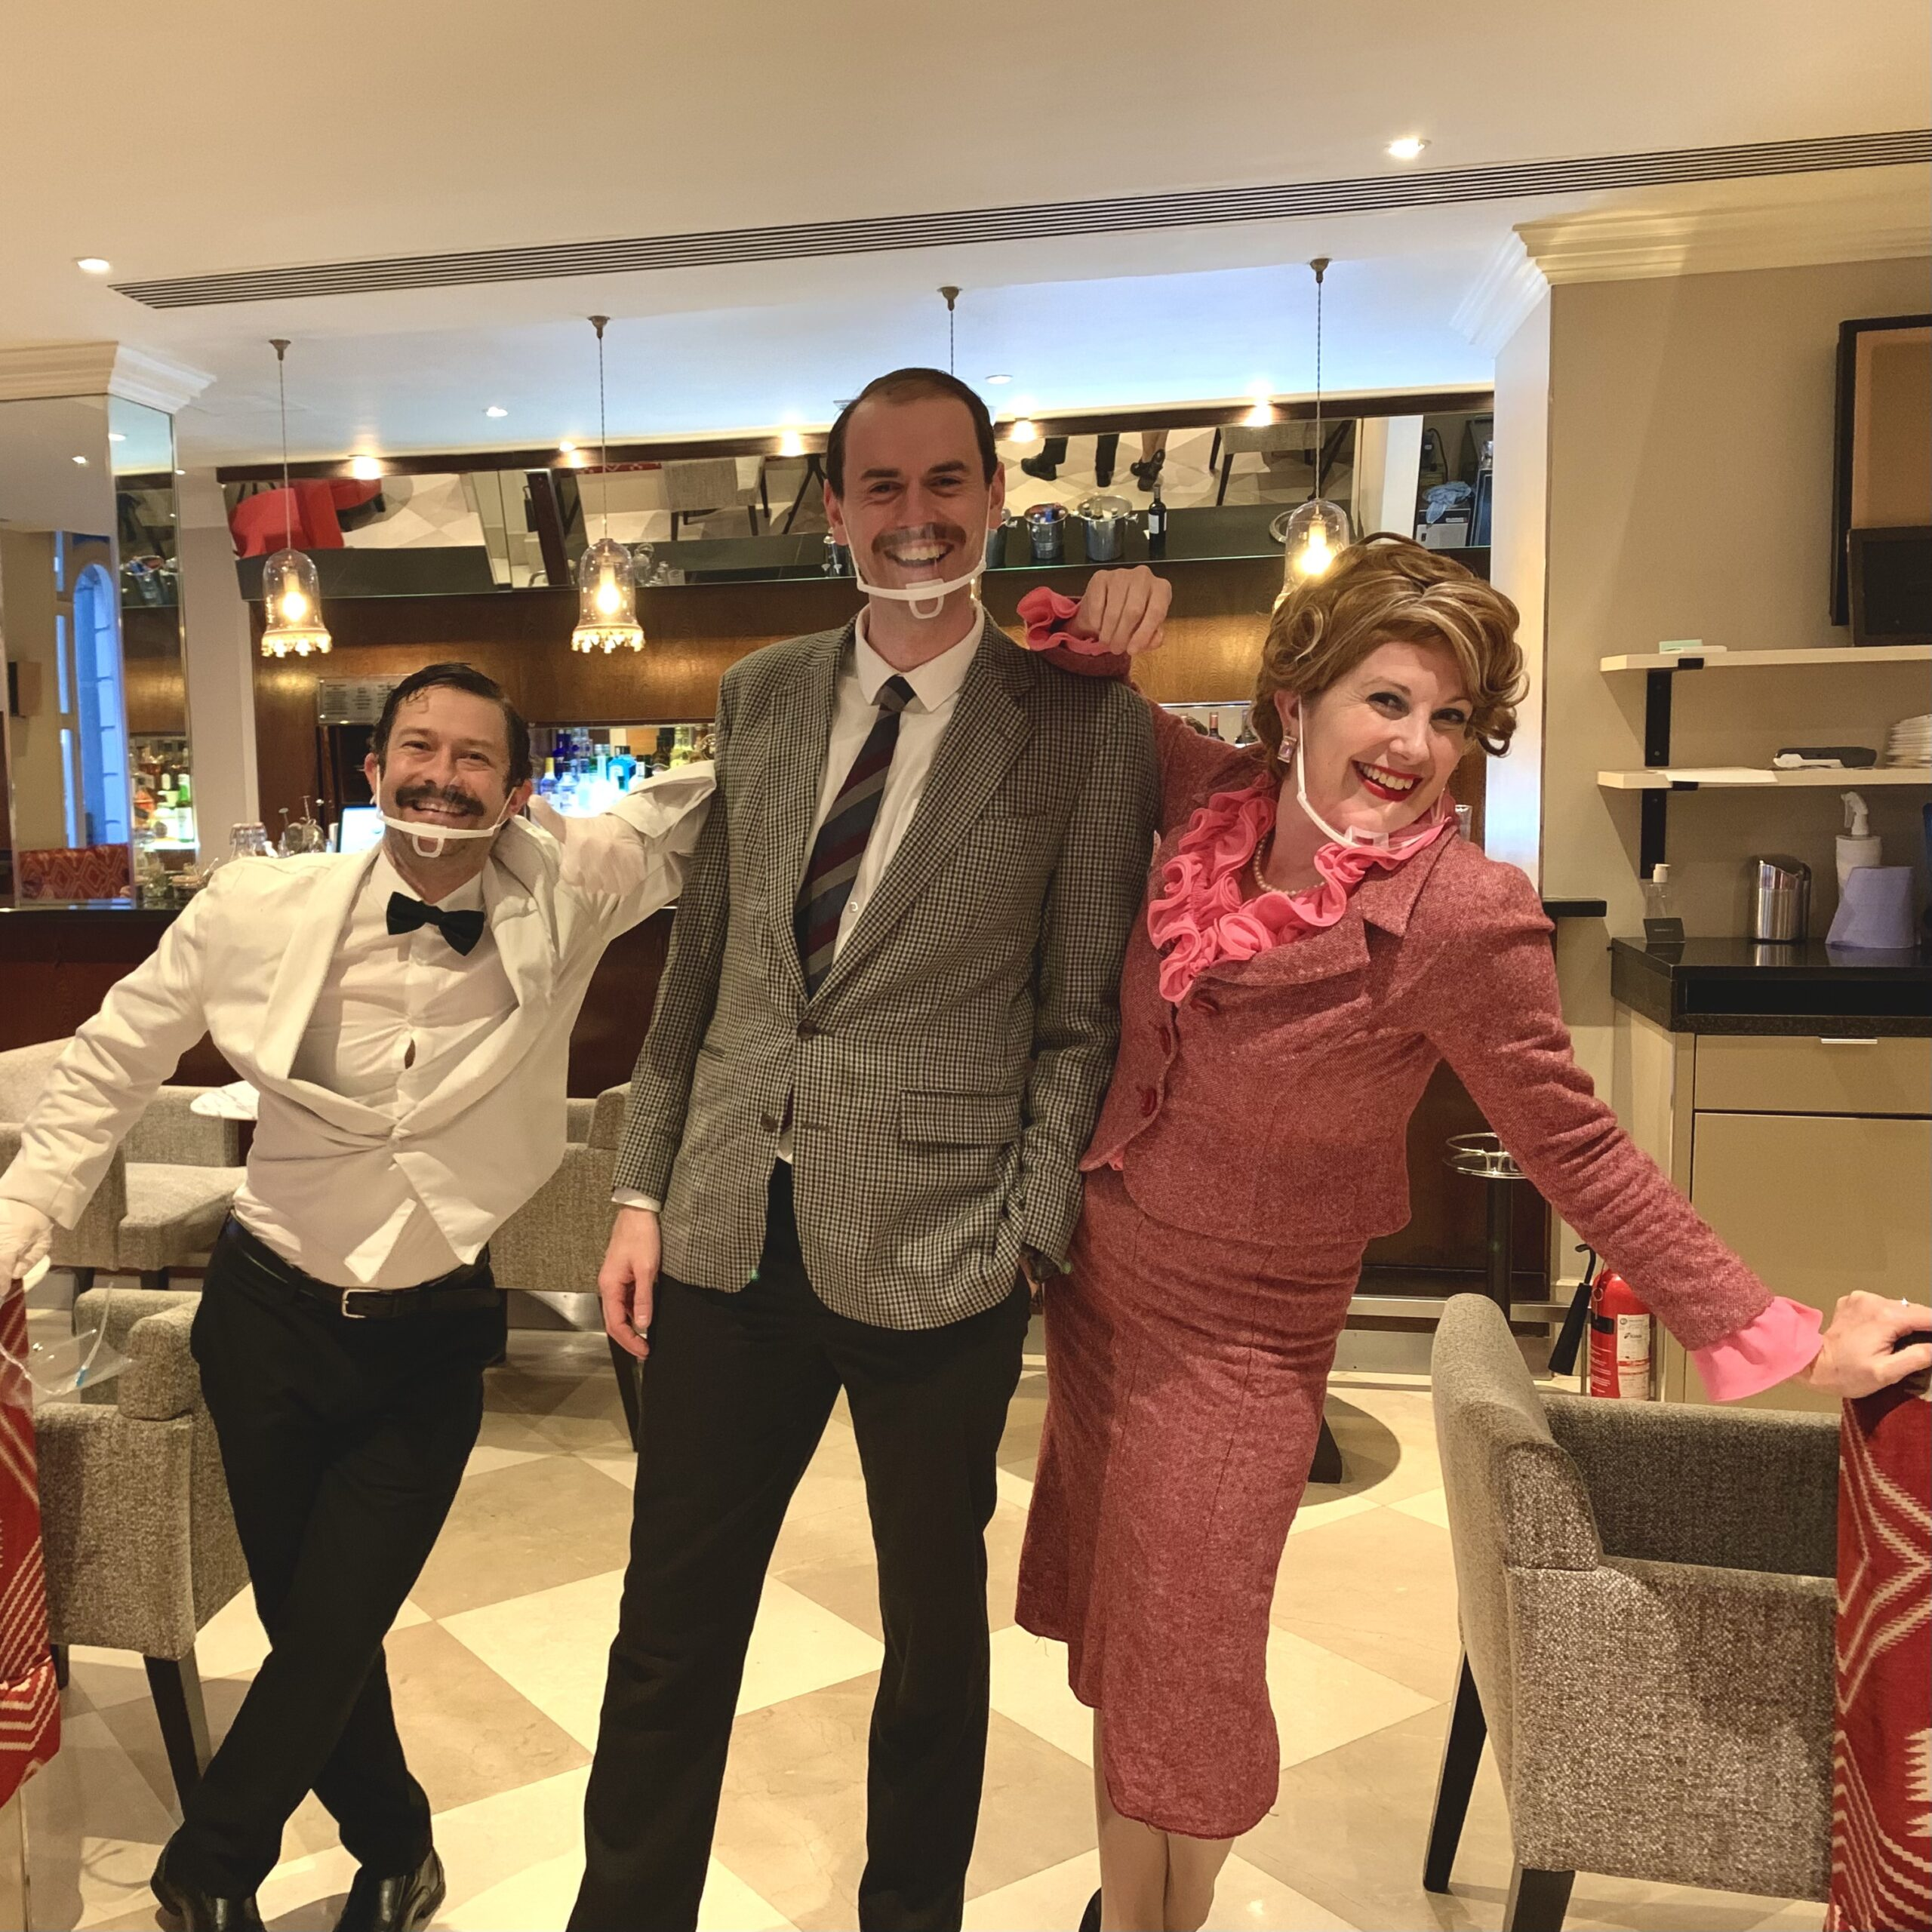 REVIEW: Faulty Towers, the Dining Experience, Torquay Suite Radisson Blu Hotel, Bloomsbury Street